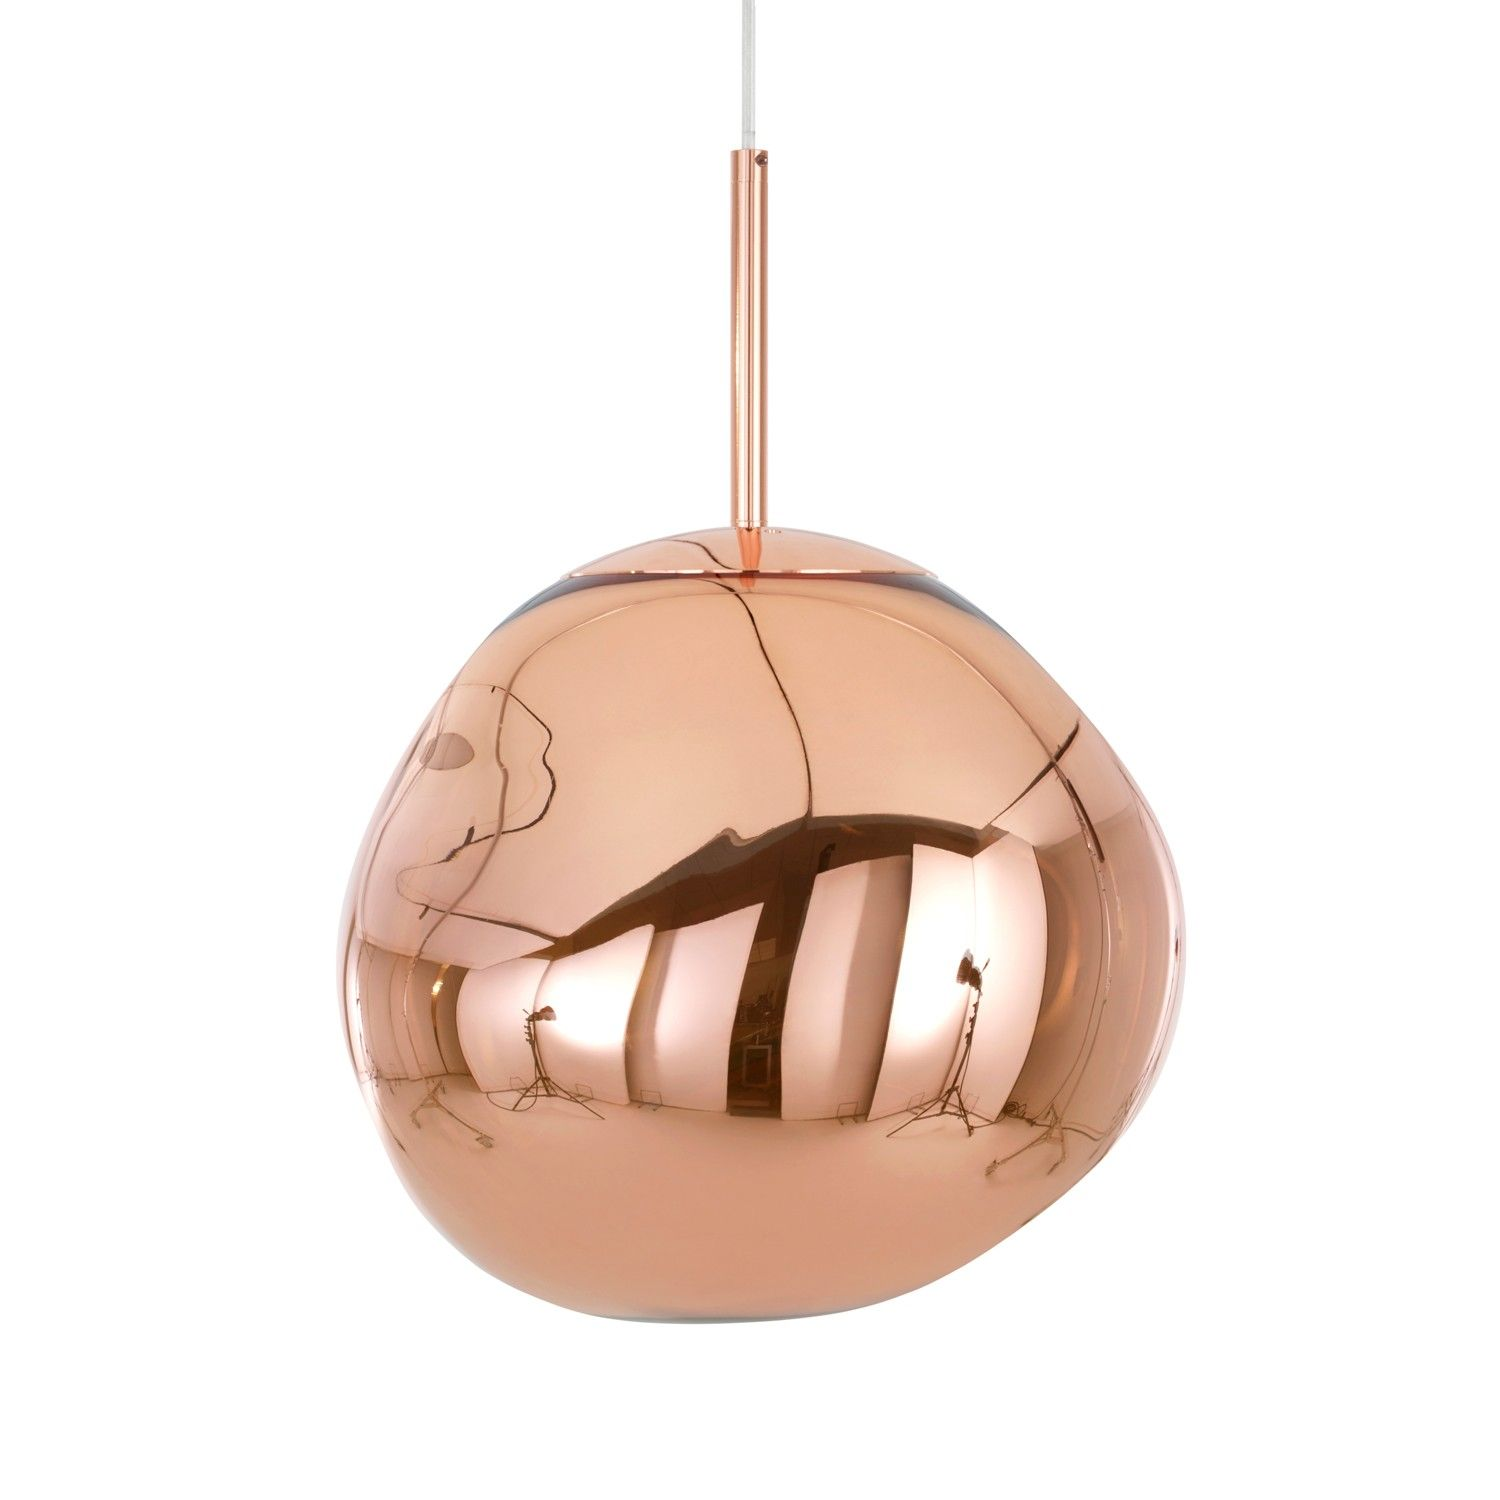 With Melt Tom Dixon S Experiments In The Technologically Advanced Field Of Vacuum Metallisation Ta Copper Pendant Lights Tom Dixon Melt Ceiling Pendant Lights